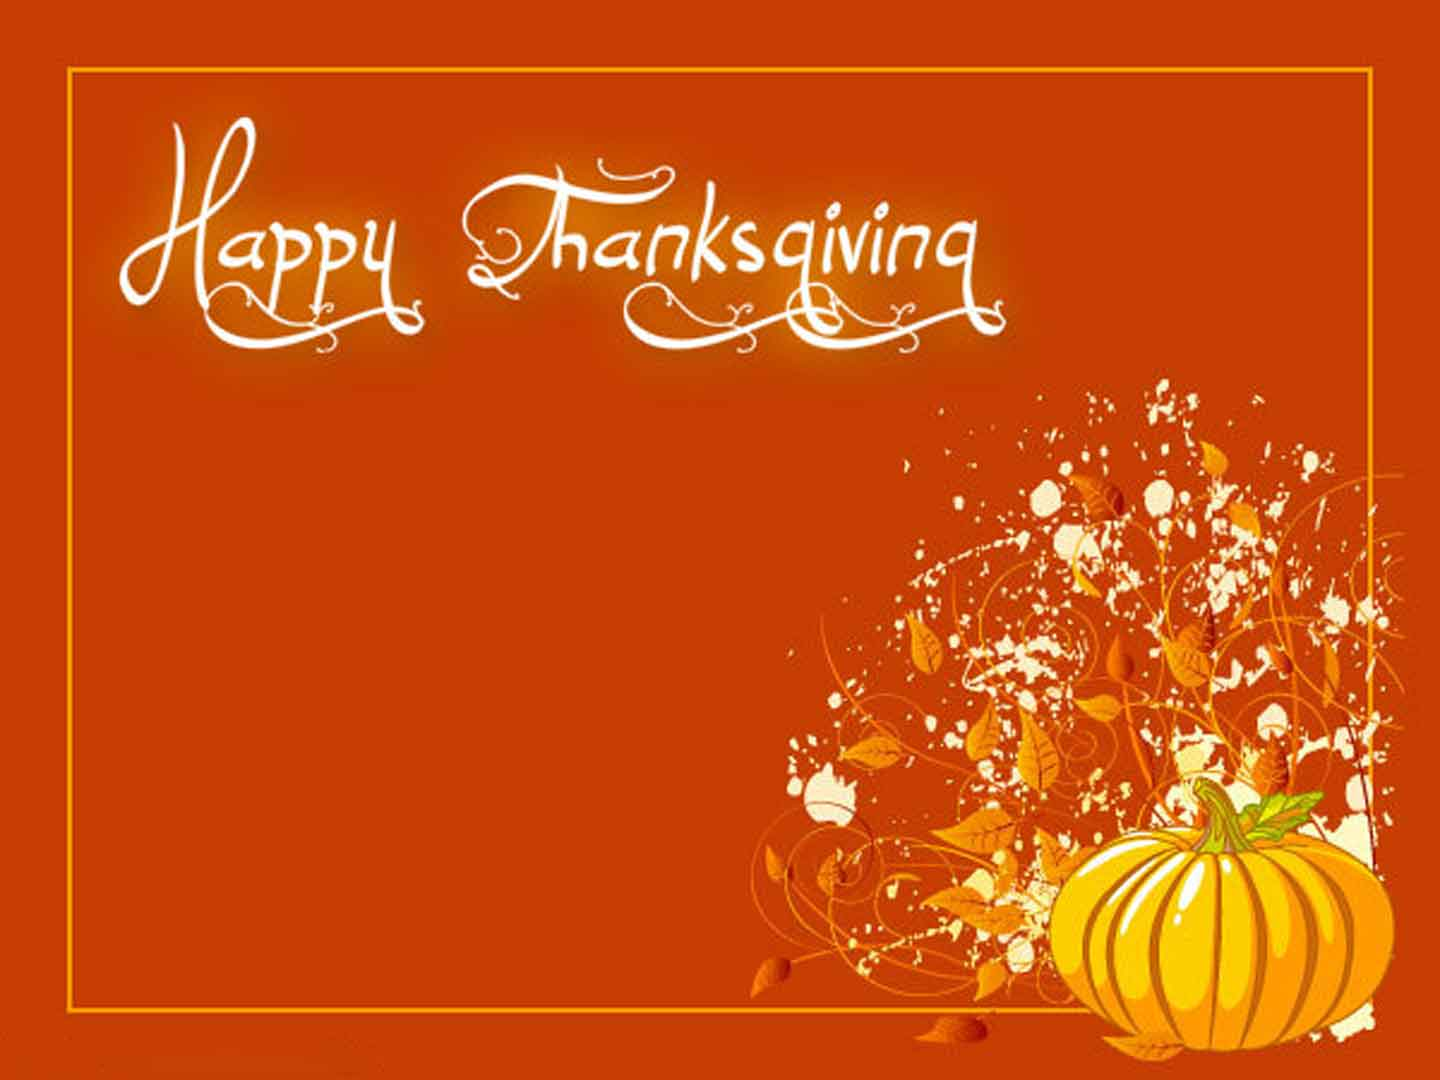 Simple Happy Thanksgiving Wallpaper Wallpaper   Happy Thanksgiving 1440x1080